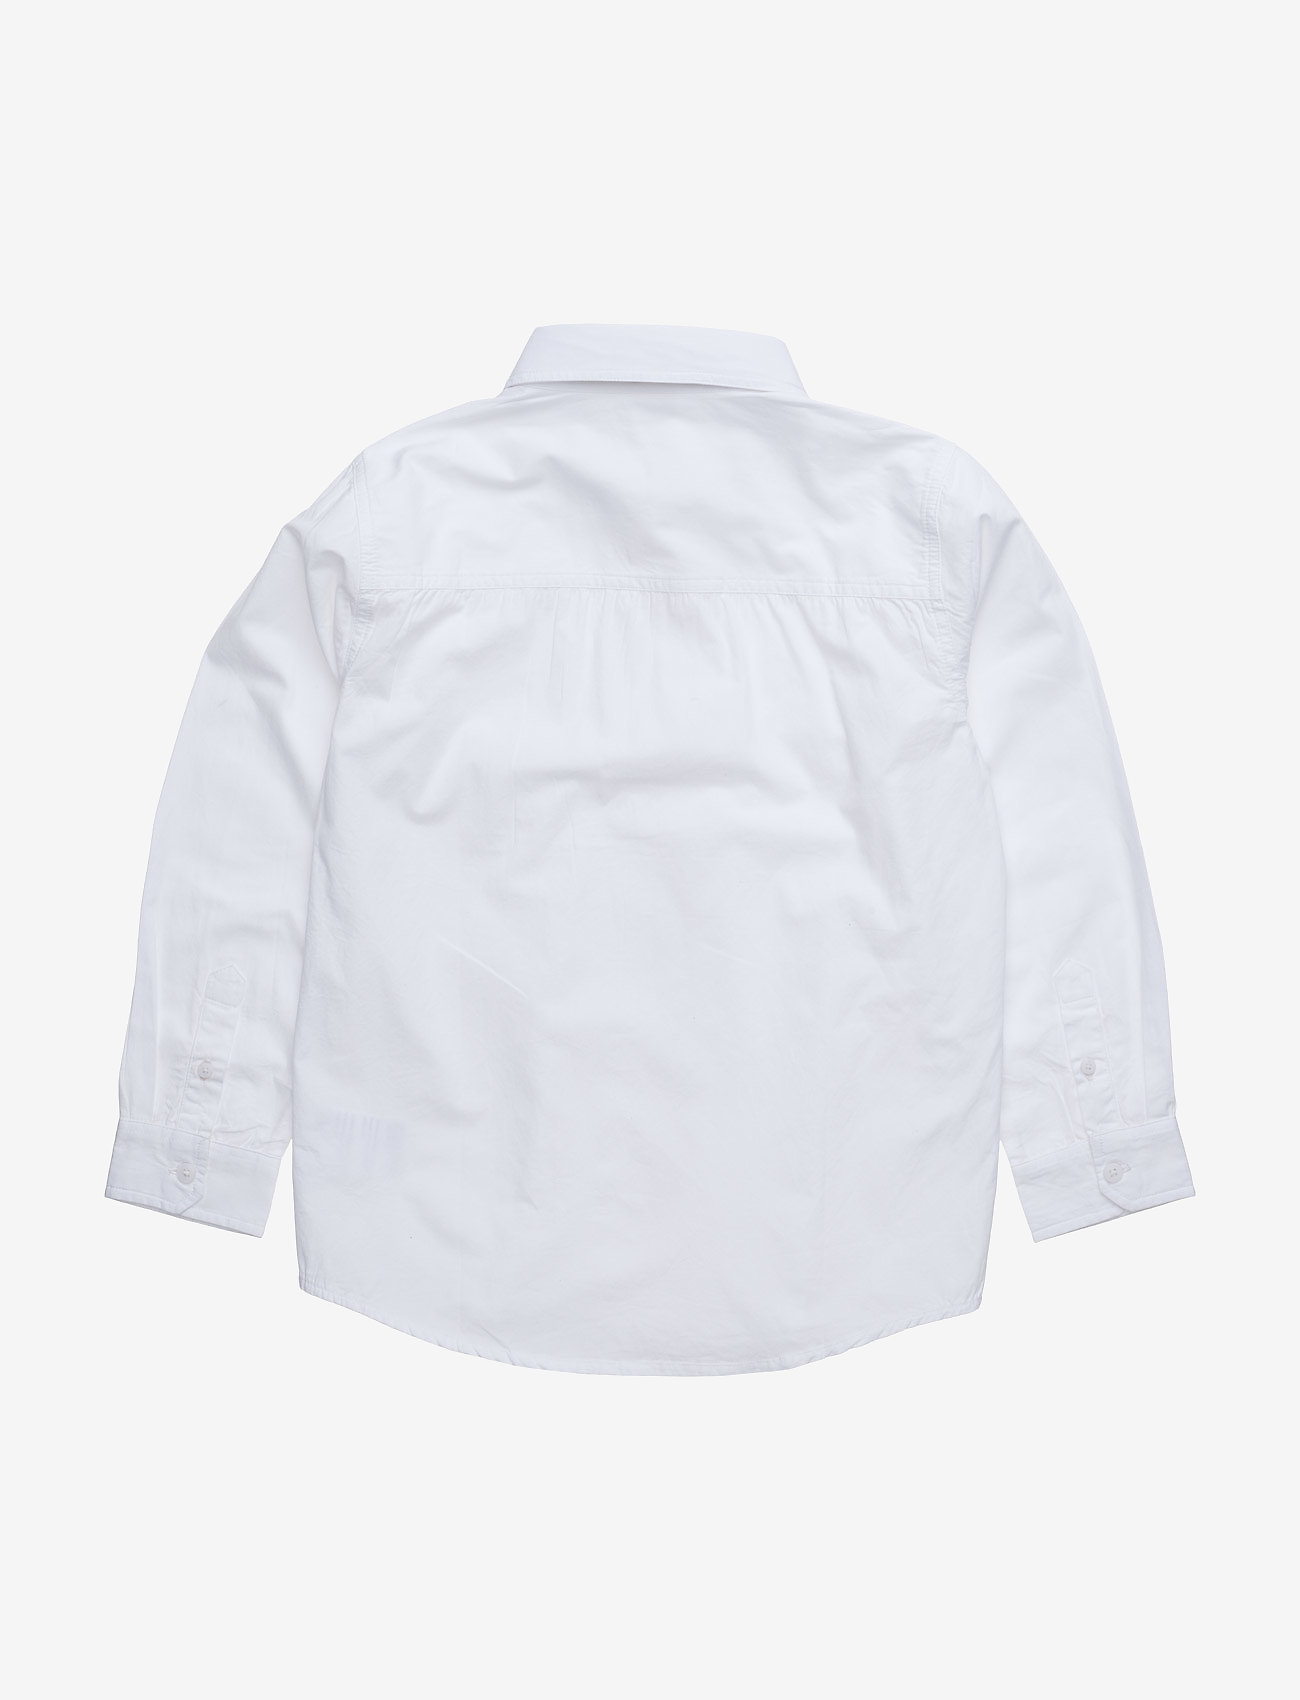 Hust & Claire - Ross - Shirt - shirts - white - 1